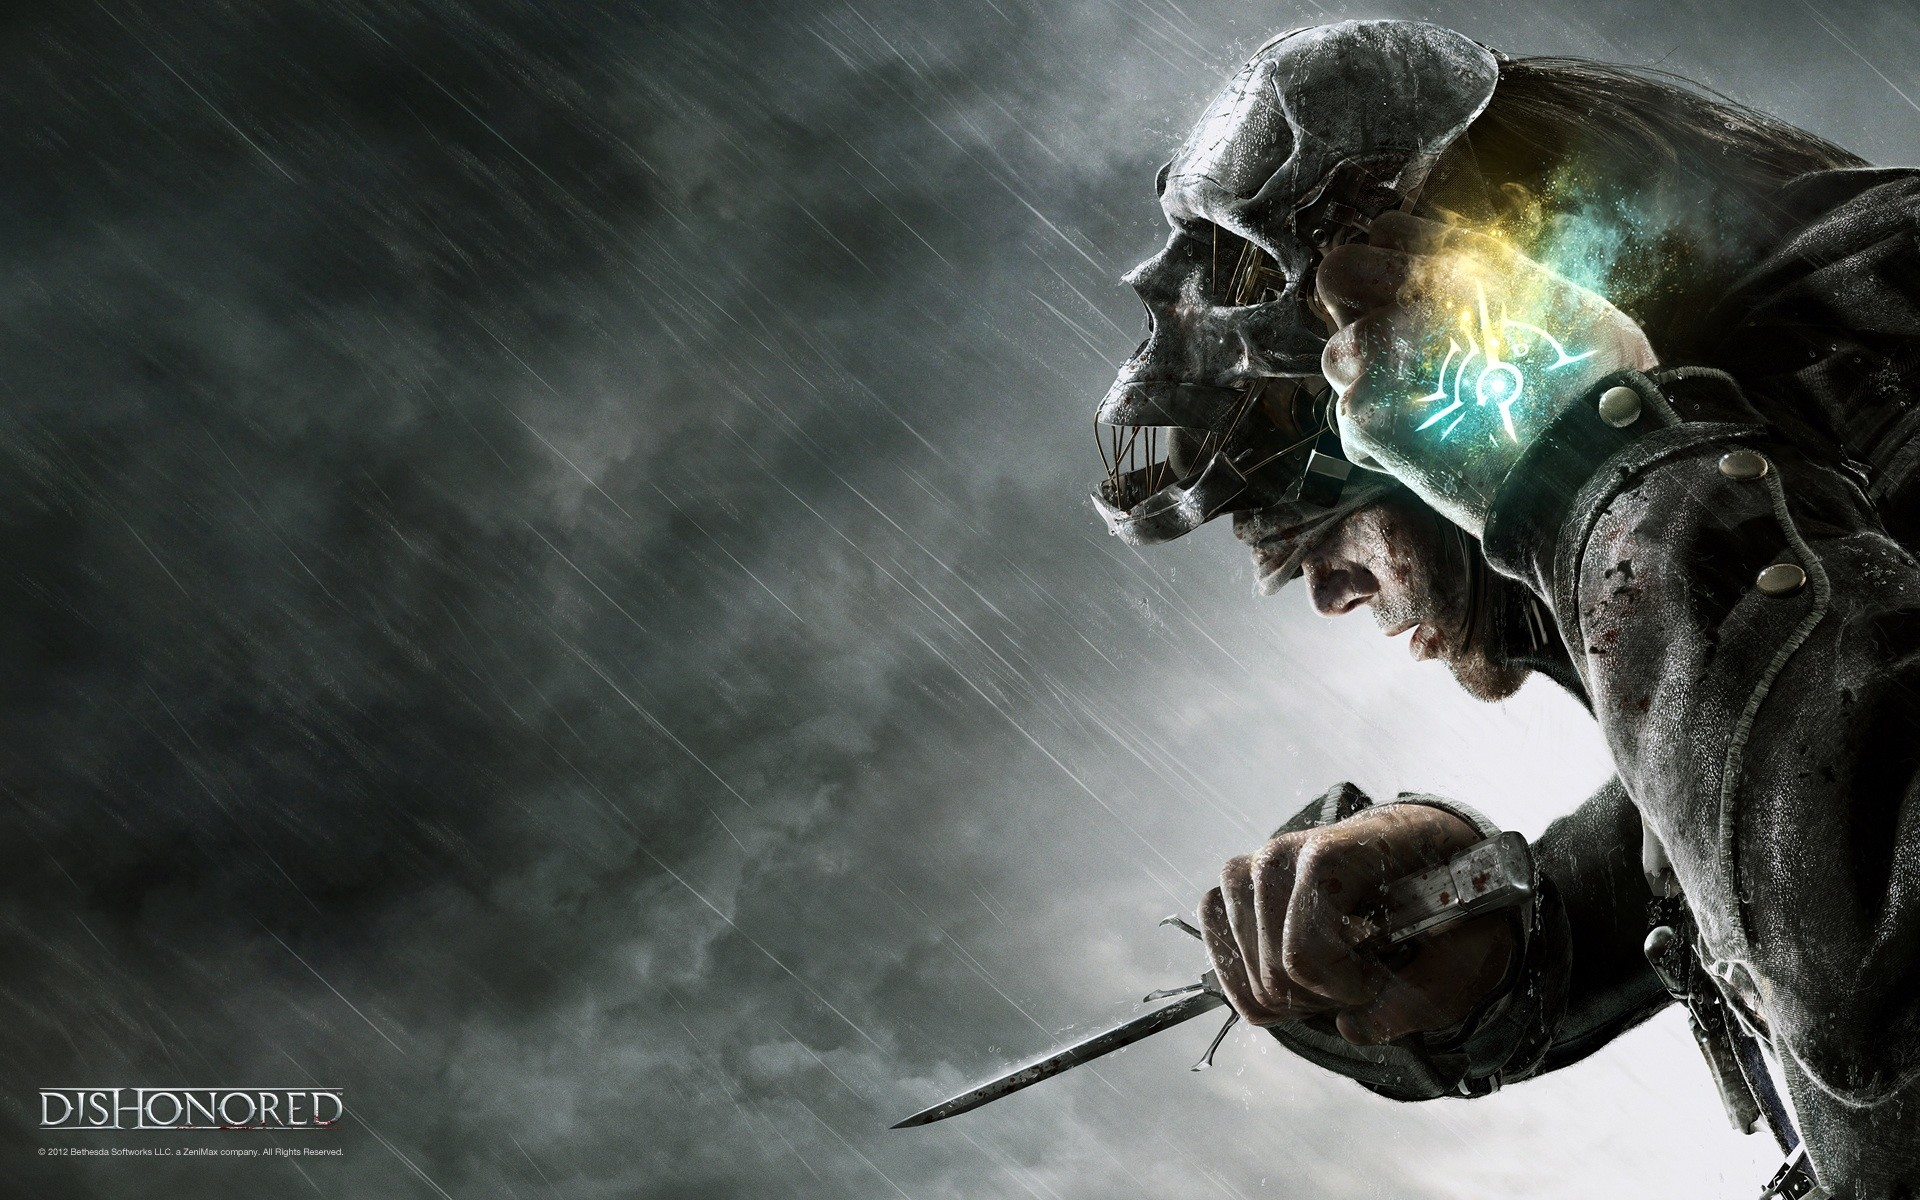 Cool Video Game Wallpapers (78 Wallpapers)